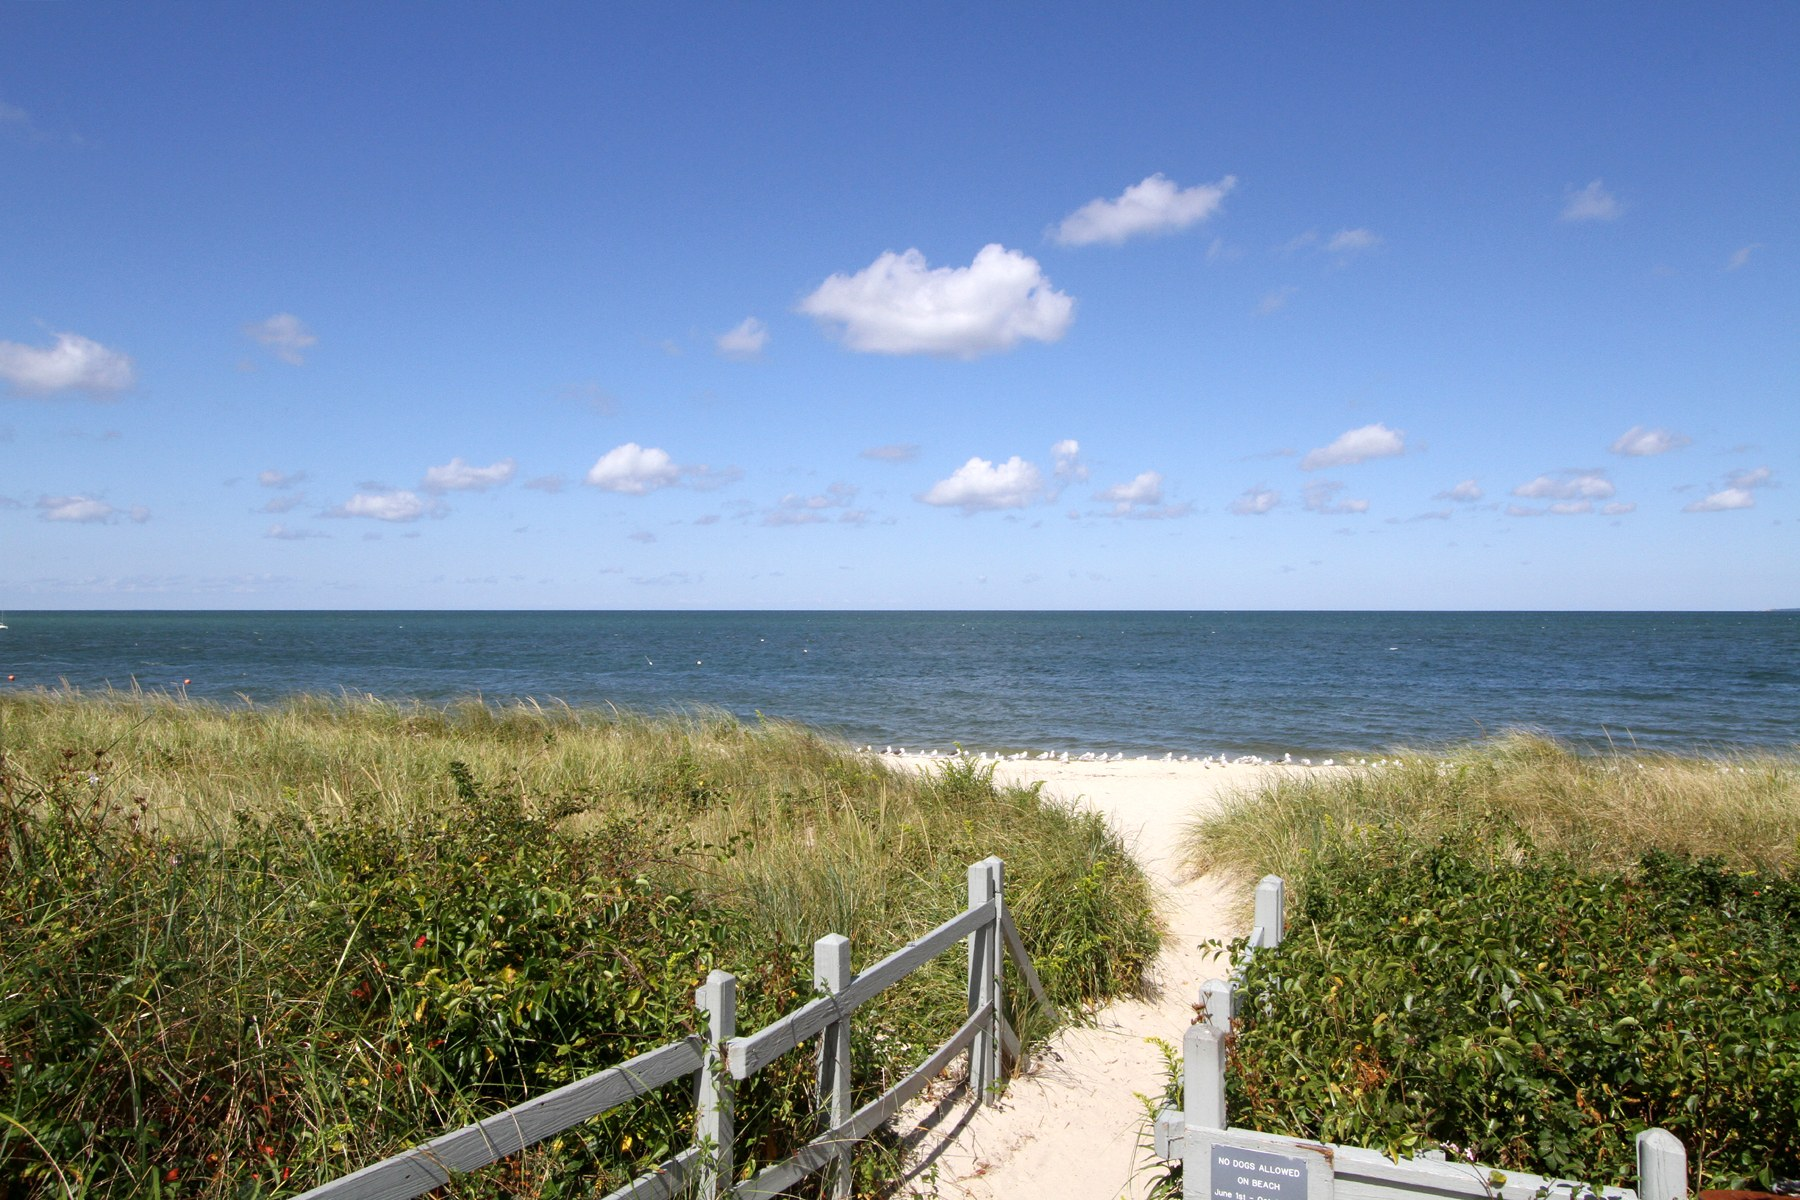 257 sea pines drive 257 brewster ma 02631 brewster gibson sotheby s international realty - Pinne dive system ...